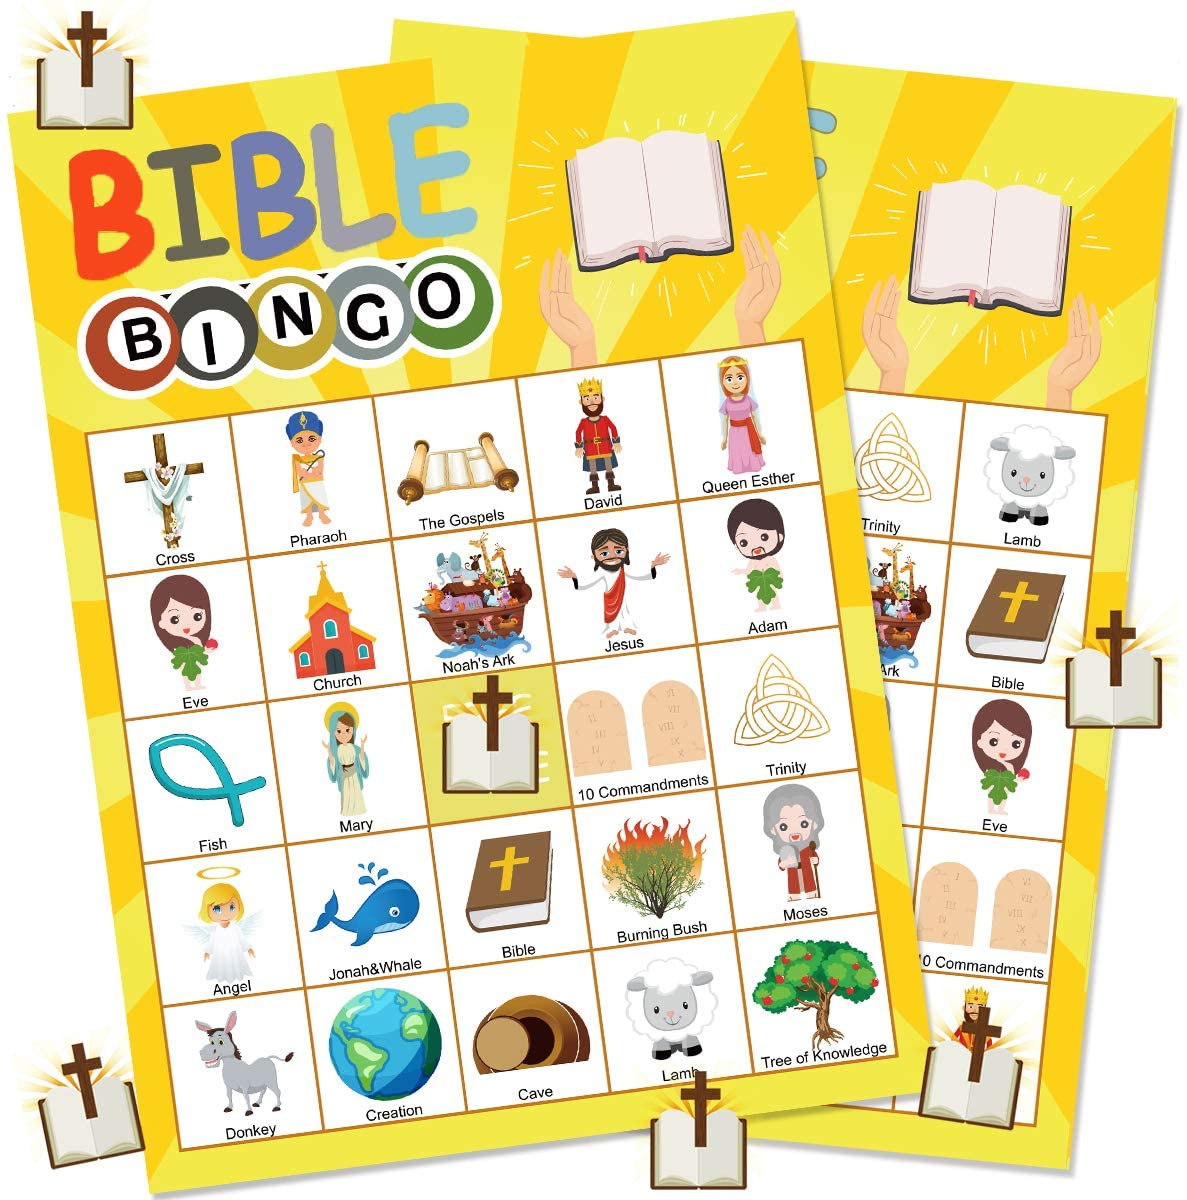 Funnlot Bible Games Bible Activities for Kids 24 Players Bible Bingo Game Pack for Church Family Open Day Sunday School Bible Party Decorations